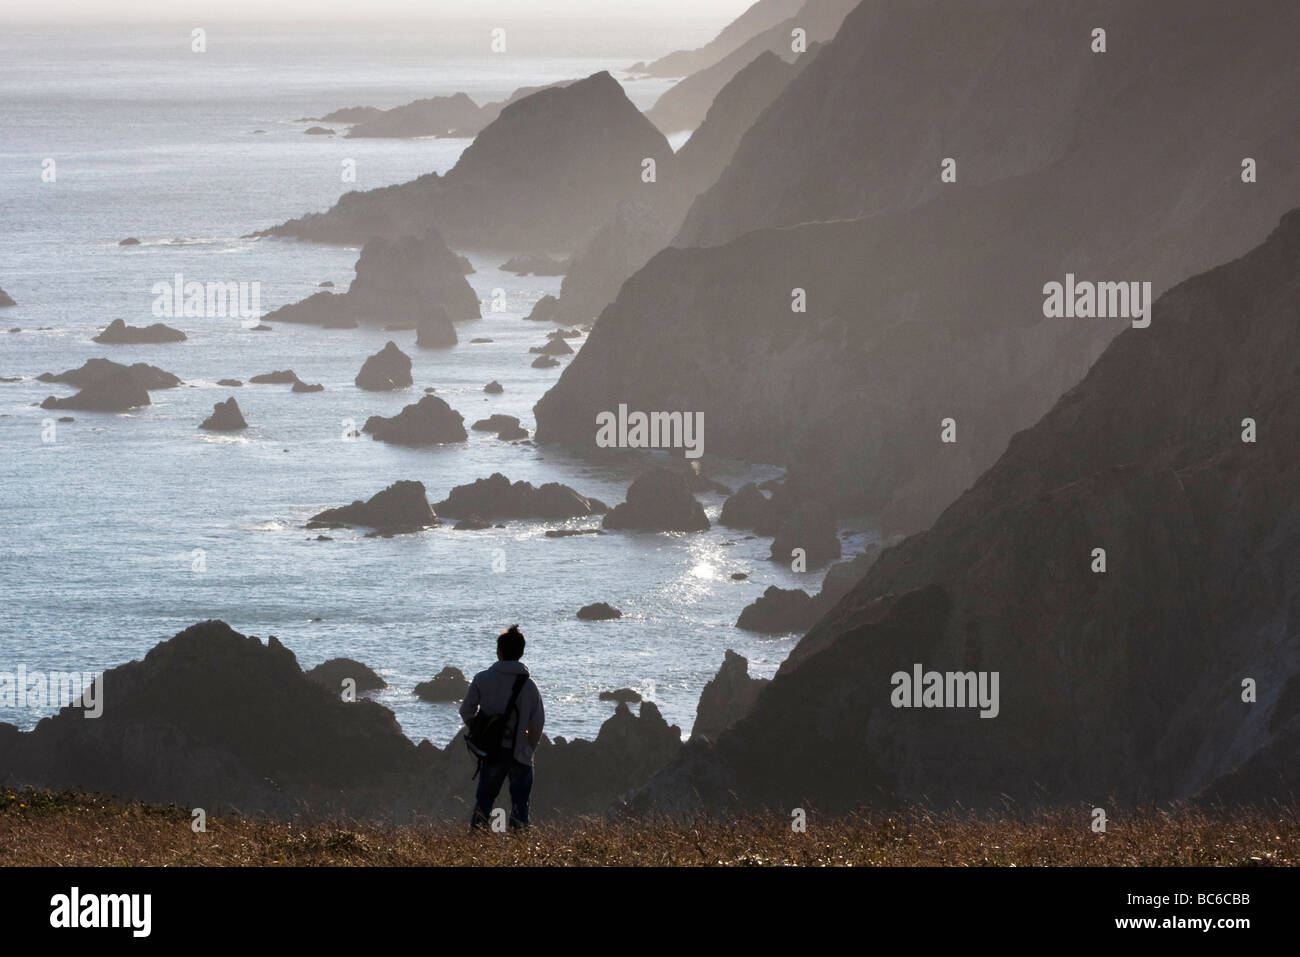 Hiker in front of Chimney Rock, Point Reyes National Seashore, California, USA - Stock Image